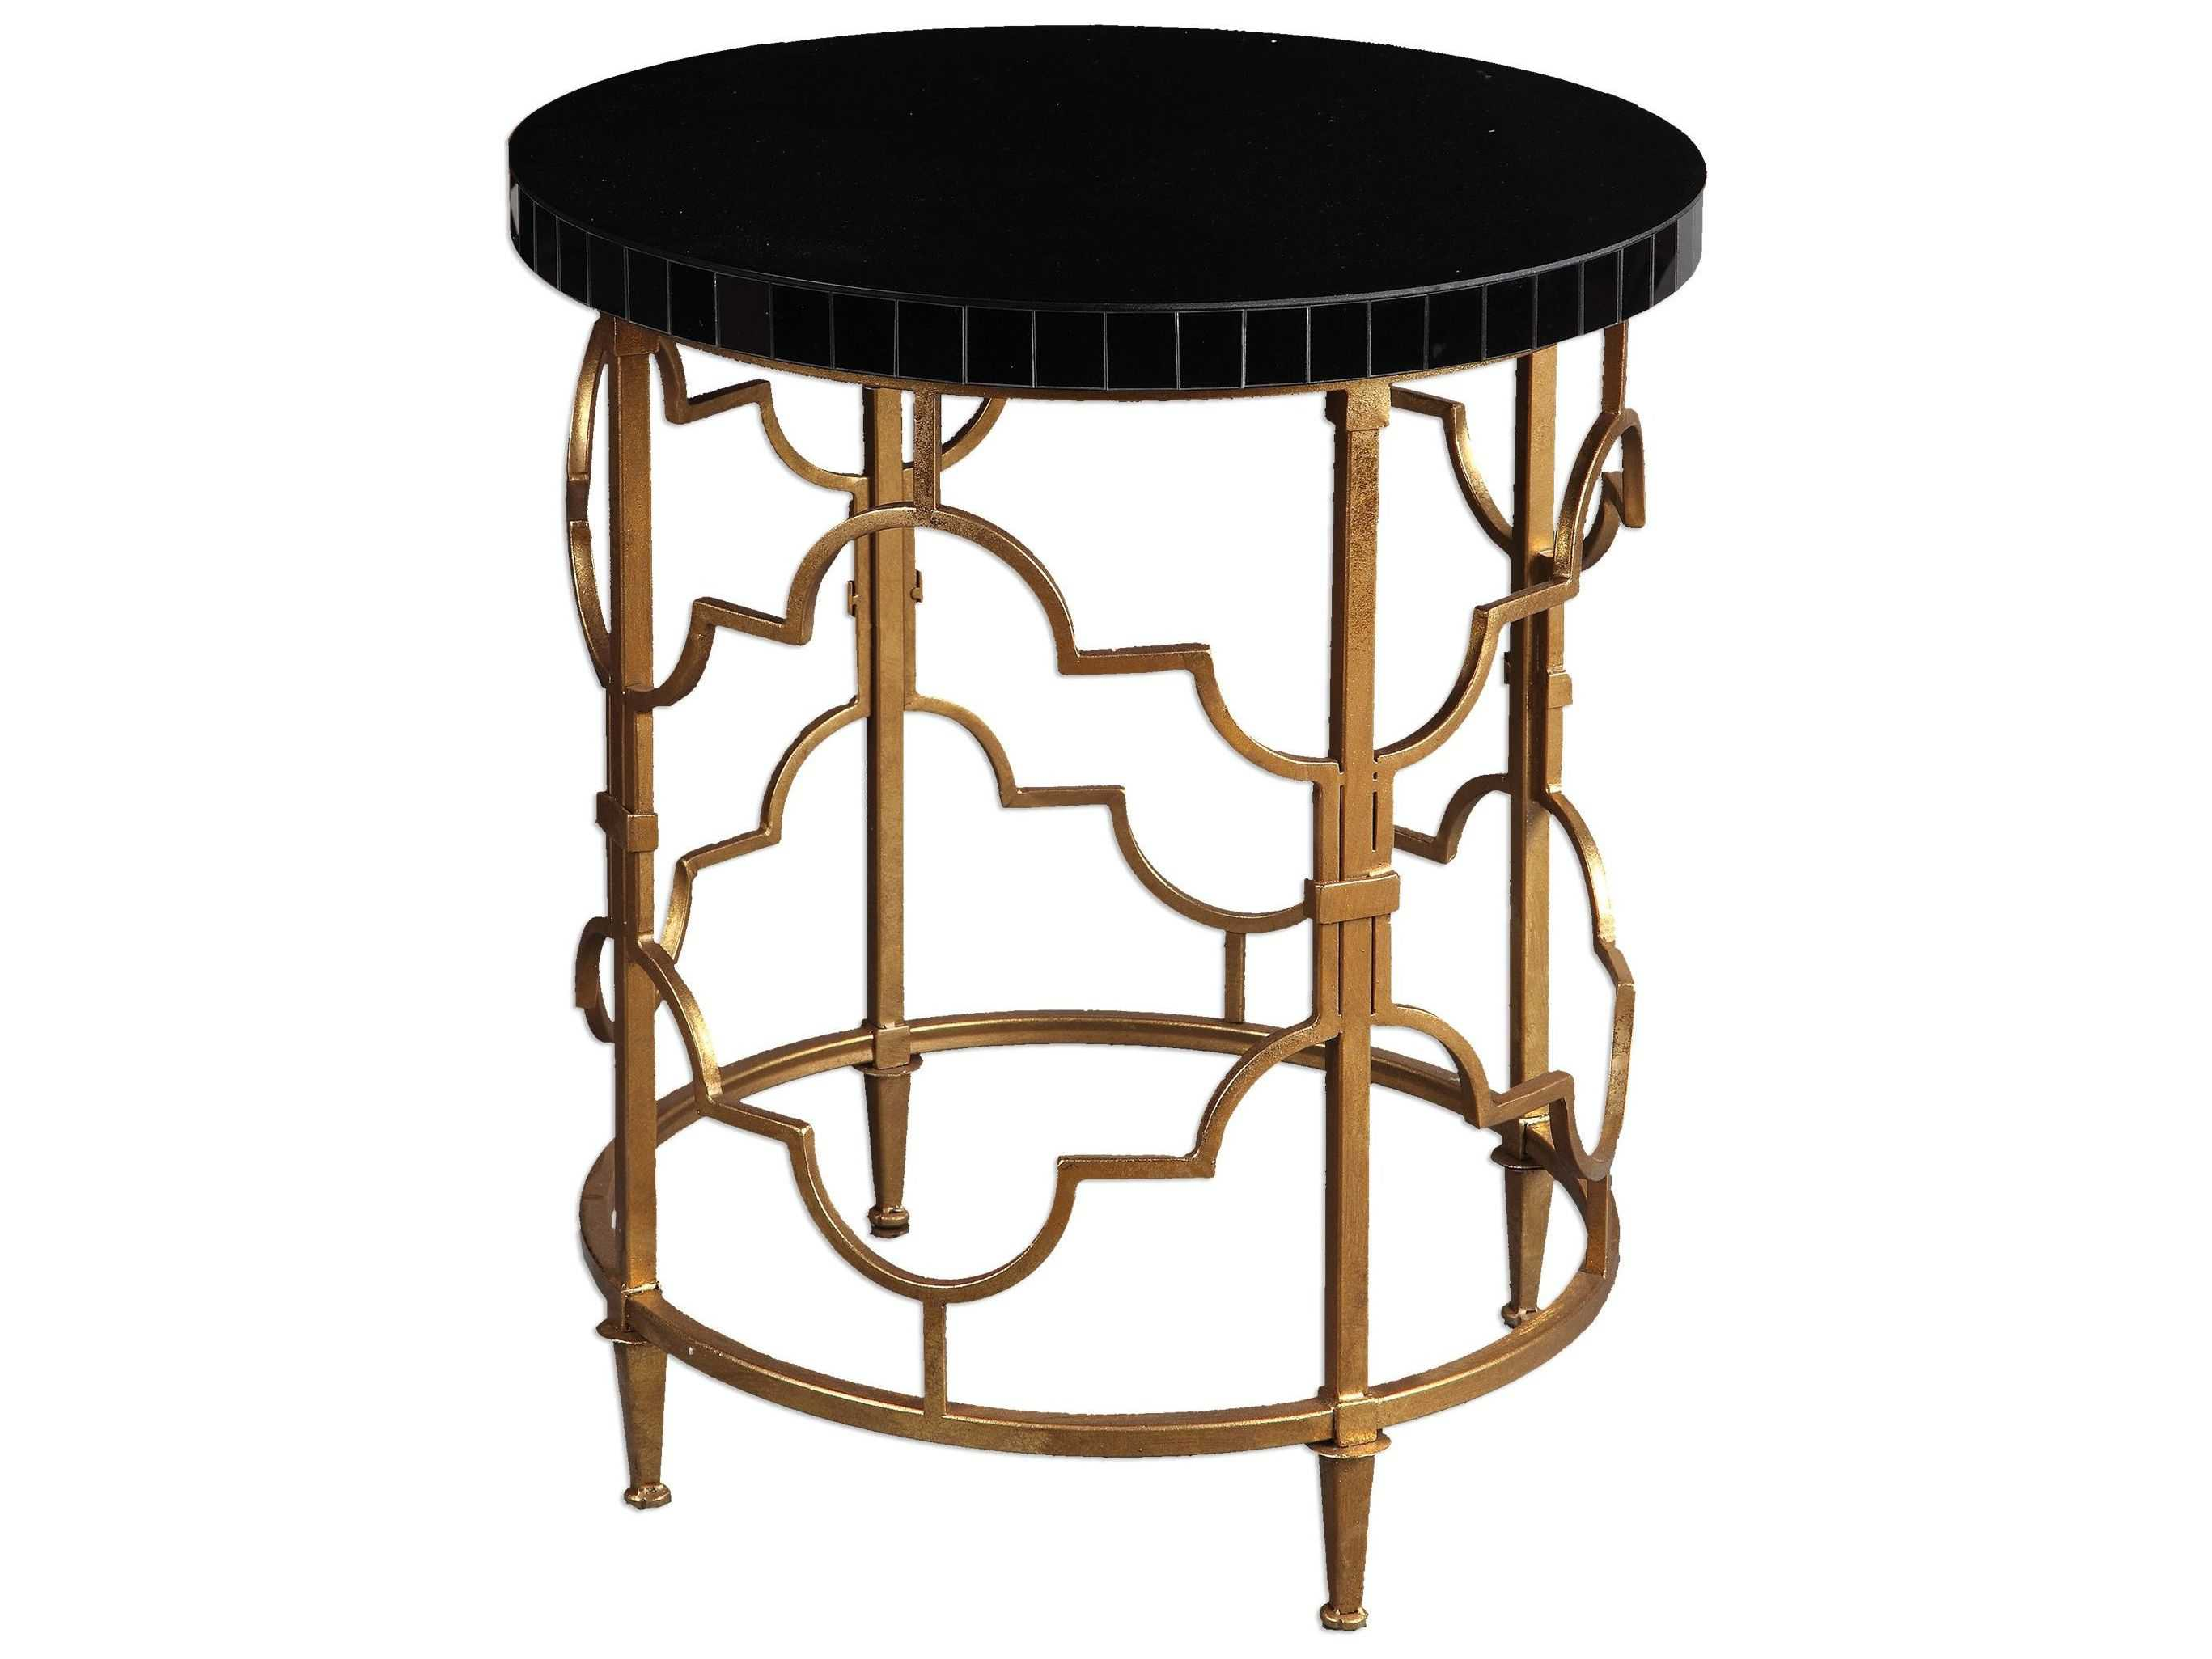 uttermost mosi gold black round accent table acrylic tables bathroom fittings metal trunk end pedestal base backyard furniture wine cube cherry wood bar height outdoor bedroom